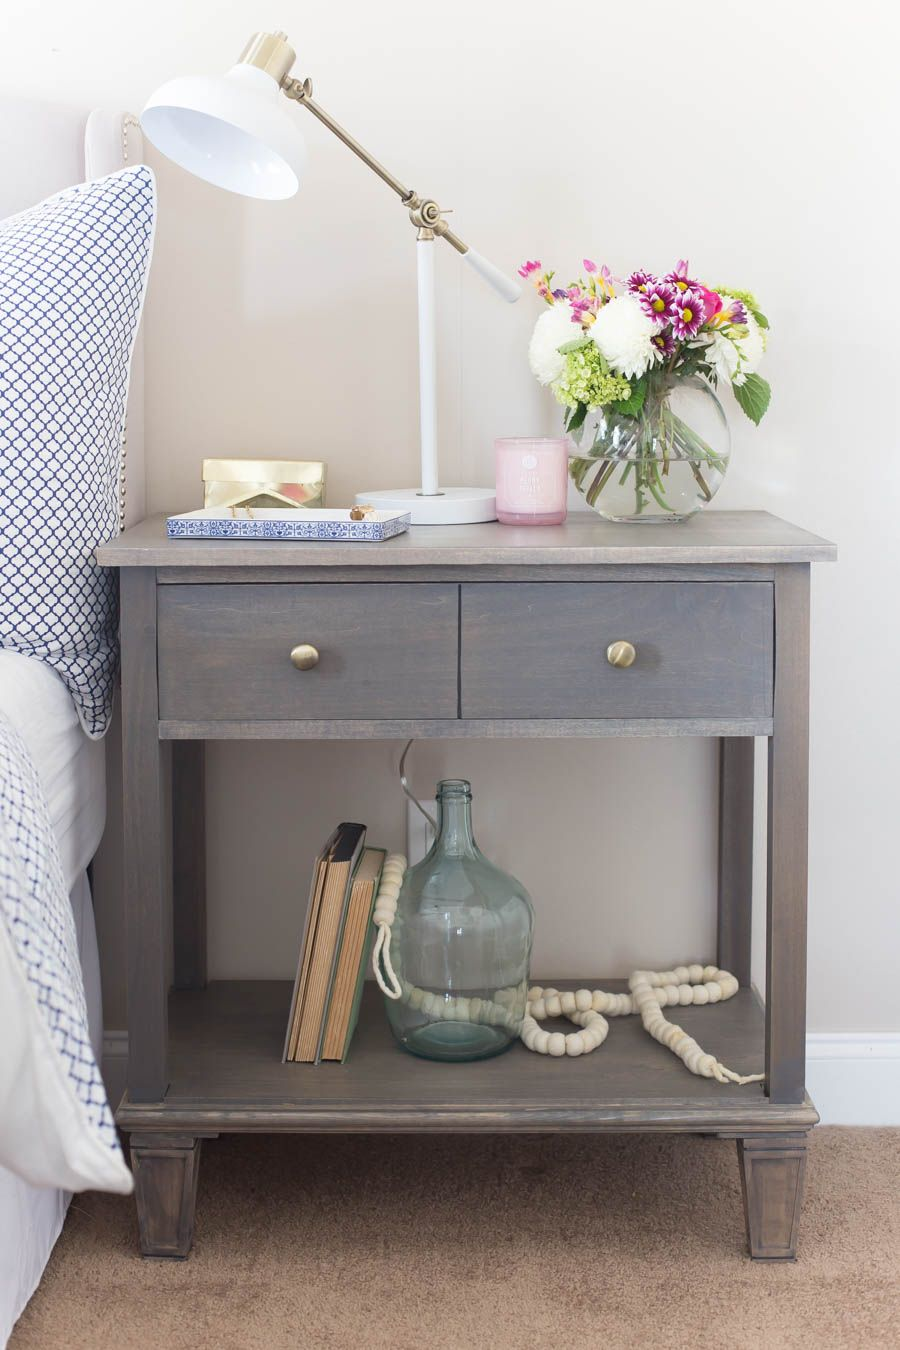 Diy Pottery Barn Inspired Sausalito Bedside Table Diy Nightstand